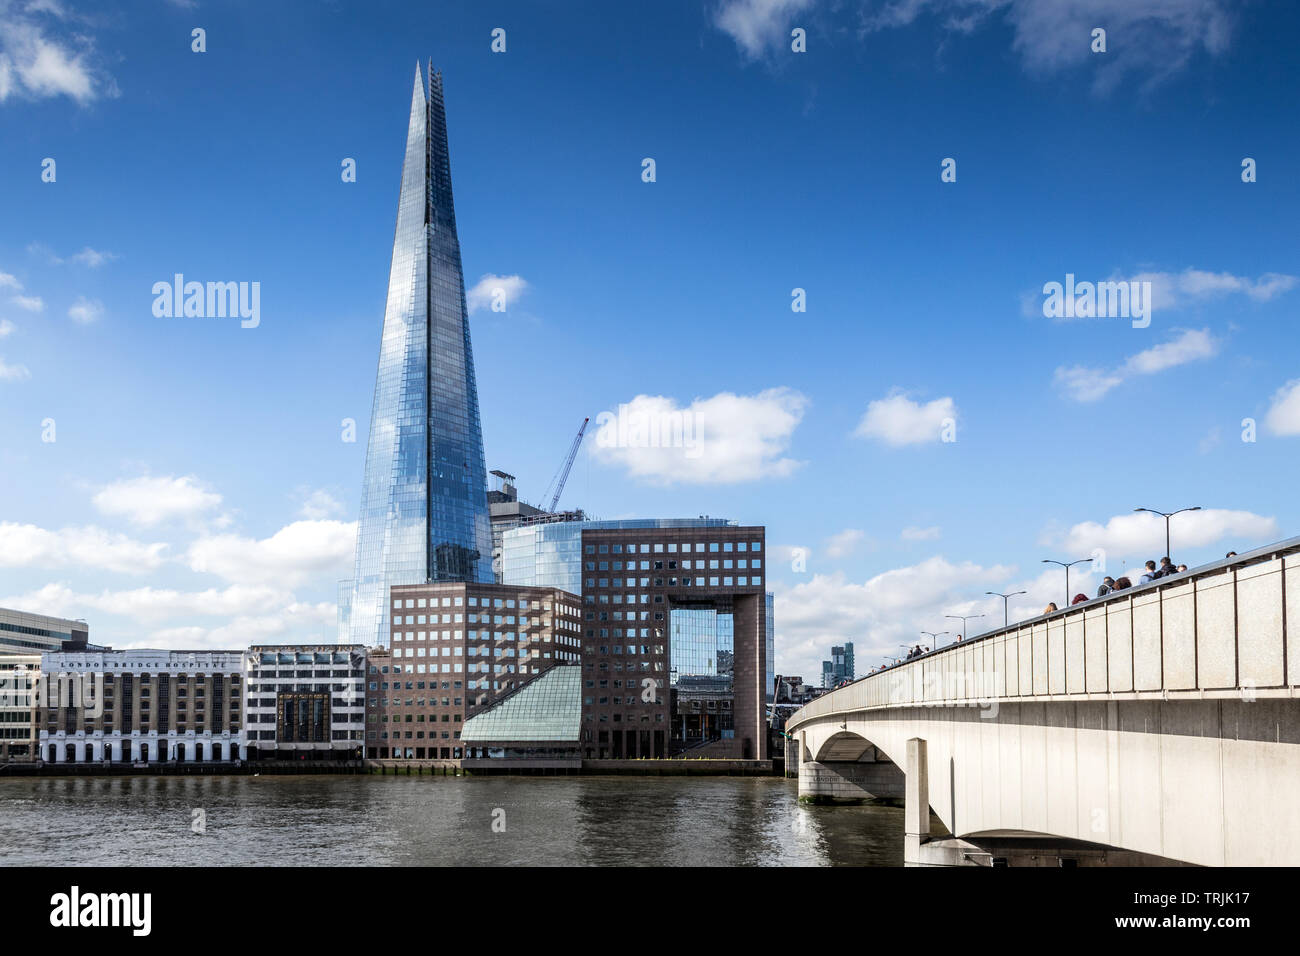 London Bridge, commuters and the Shard - Stock Image